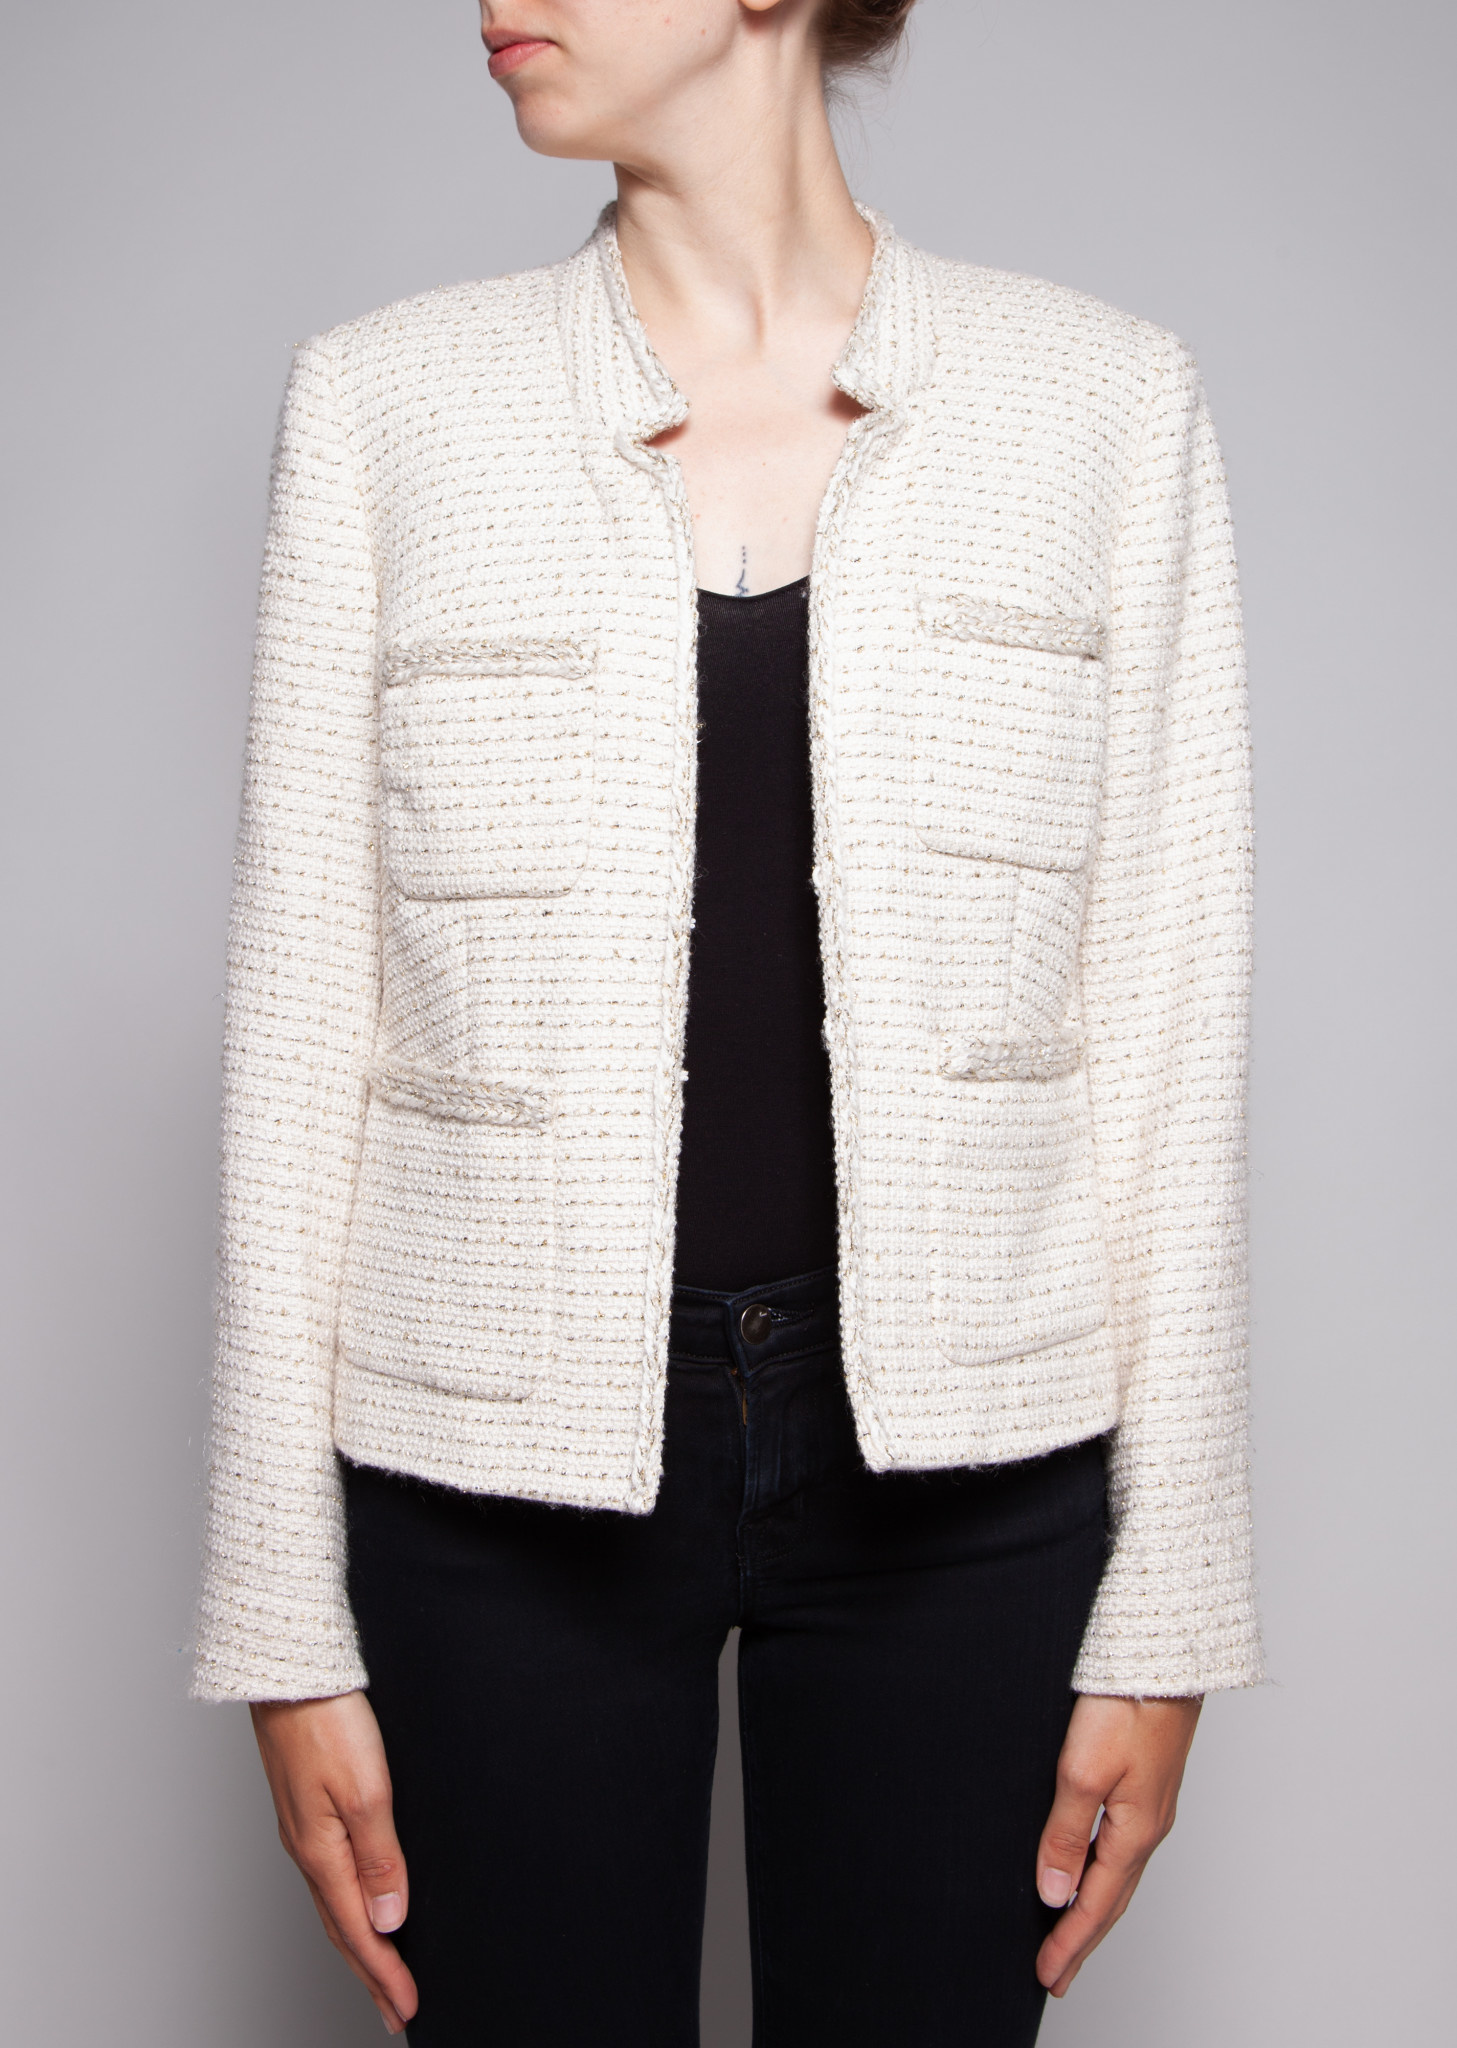 J.Crew OFF-WHITE TWEED BLAZER